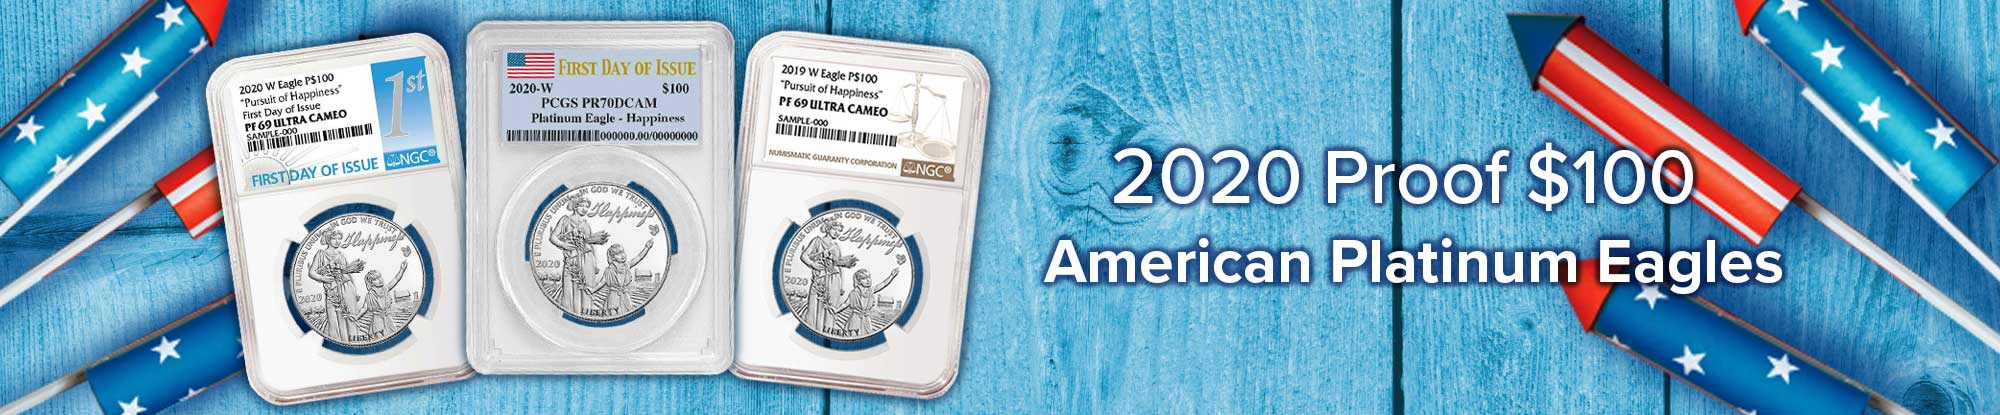 2020 Proof American Platinum Eagle